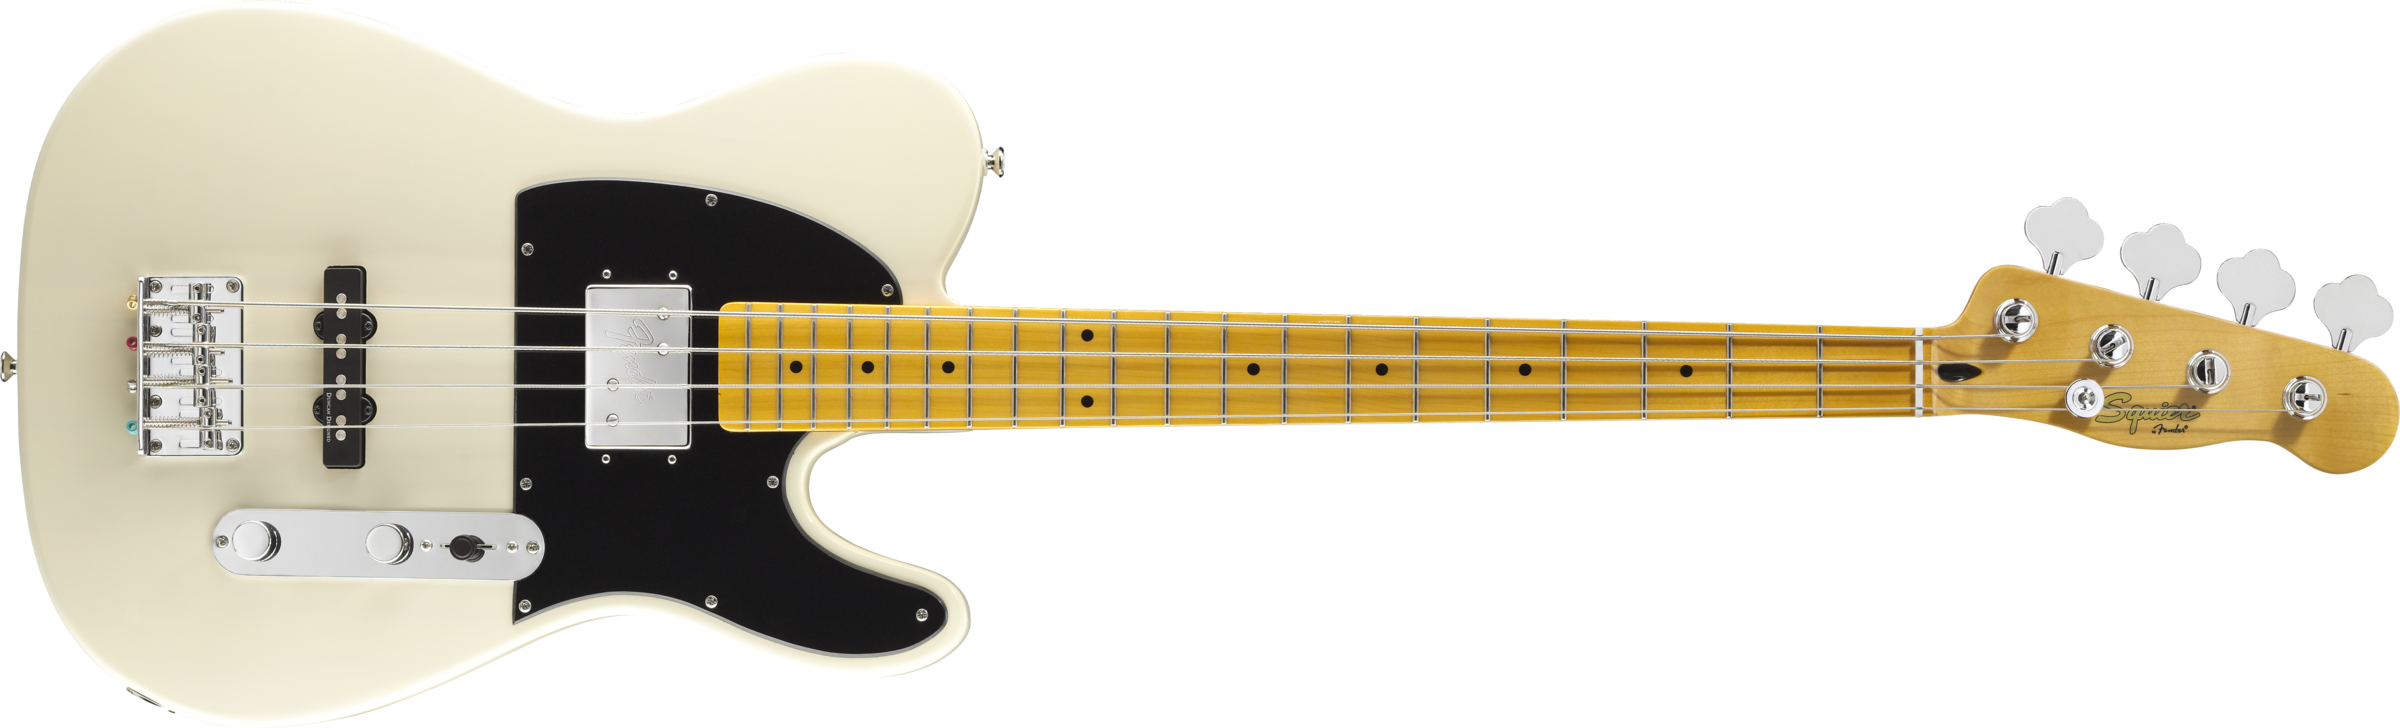 Squier Vintage Modified Tele Bass Special